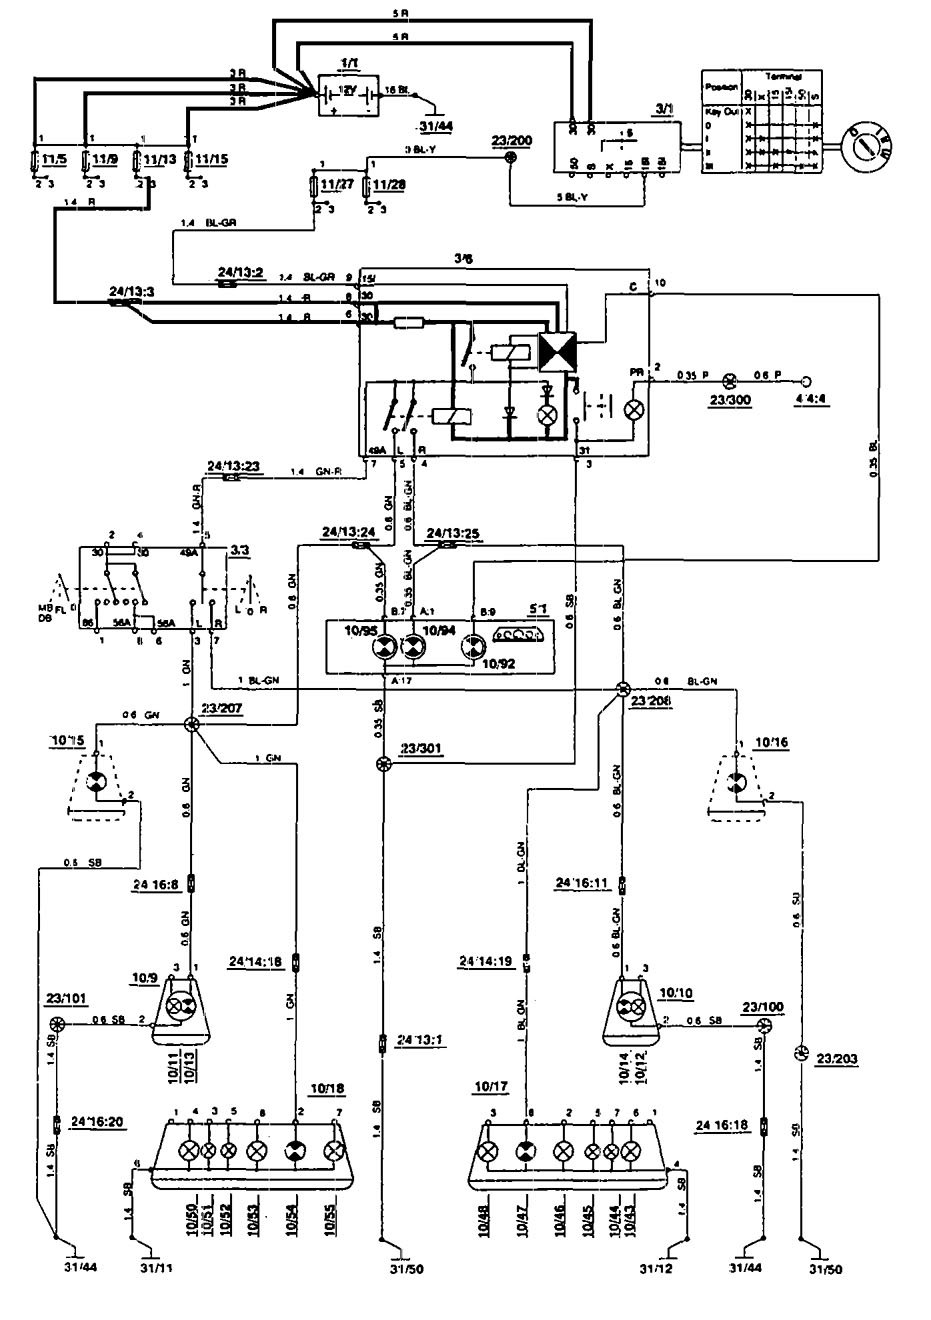 1993 Volvo 850 Wiring Diagram Great Design Of Harness Diagrams Turn Signal Lamp Relay